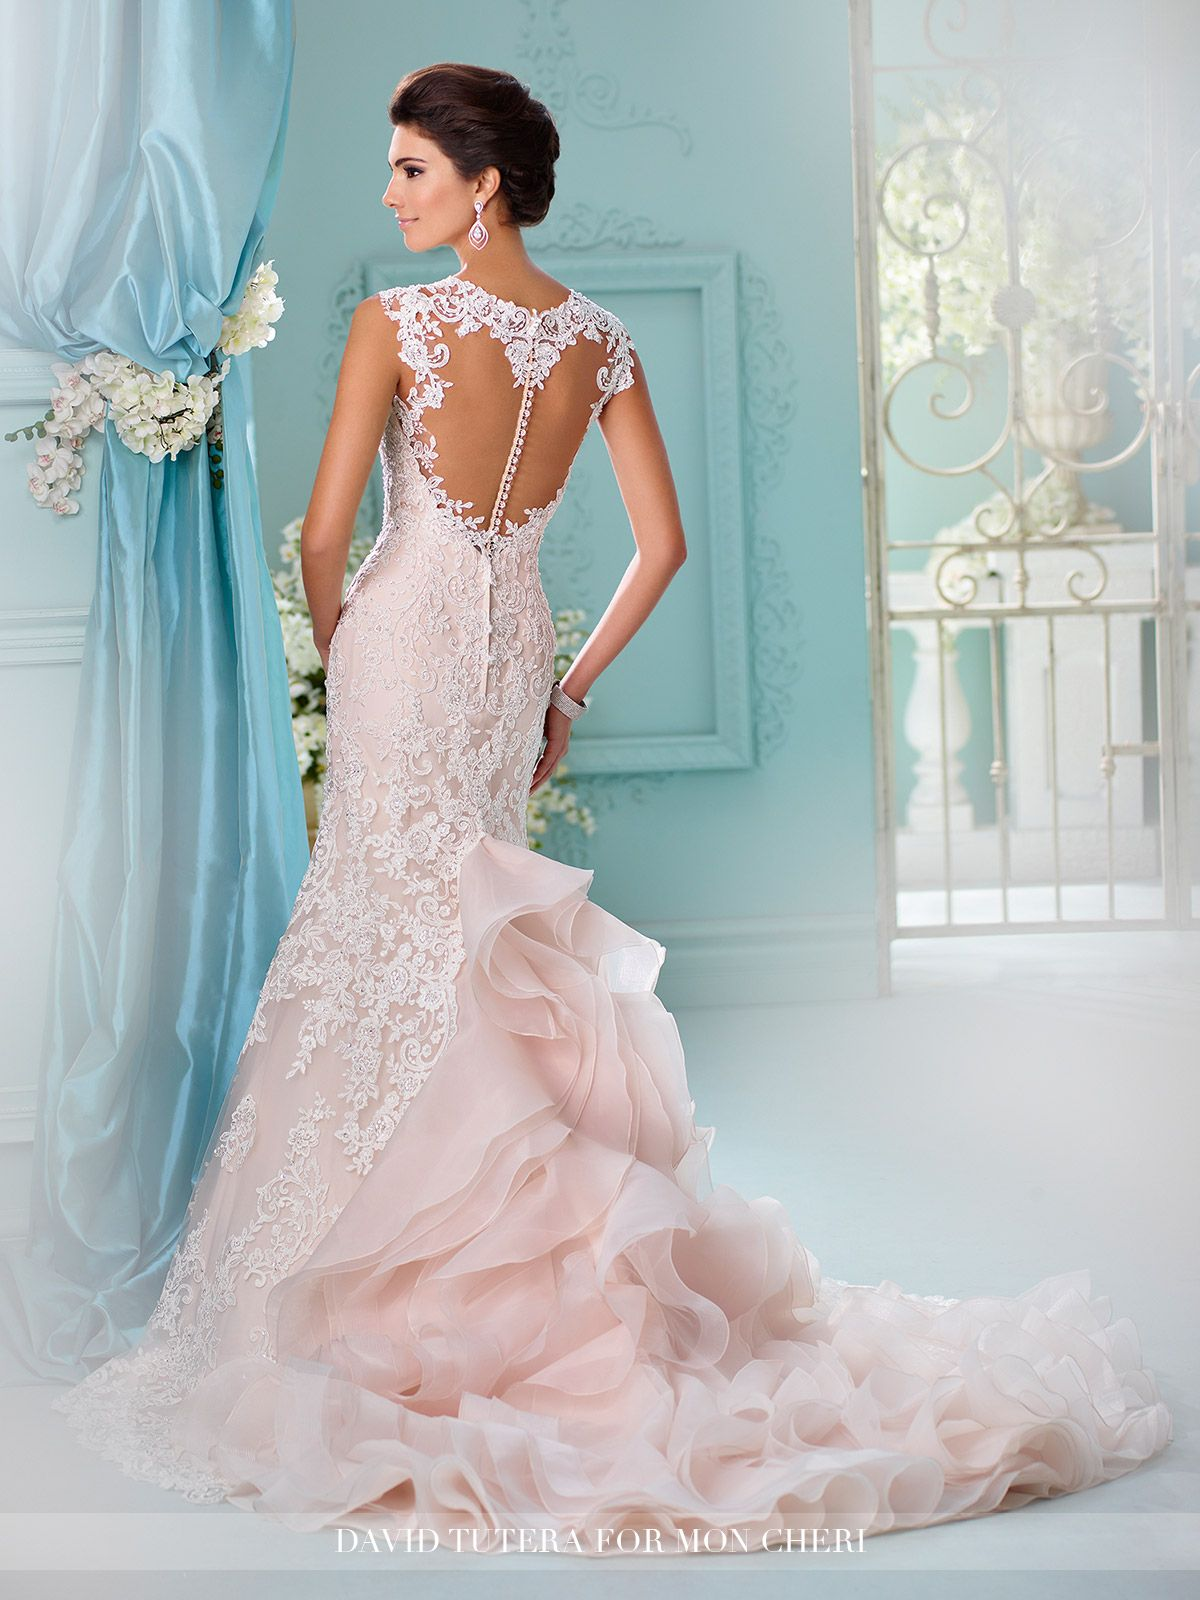 b61cf65f8d4 David Tutera for Mon Cheri - 216251 Mora - Tulle and organza over satin fit  and flare gown with hand-beaded re-embroidered Alencon lace appliqués